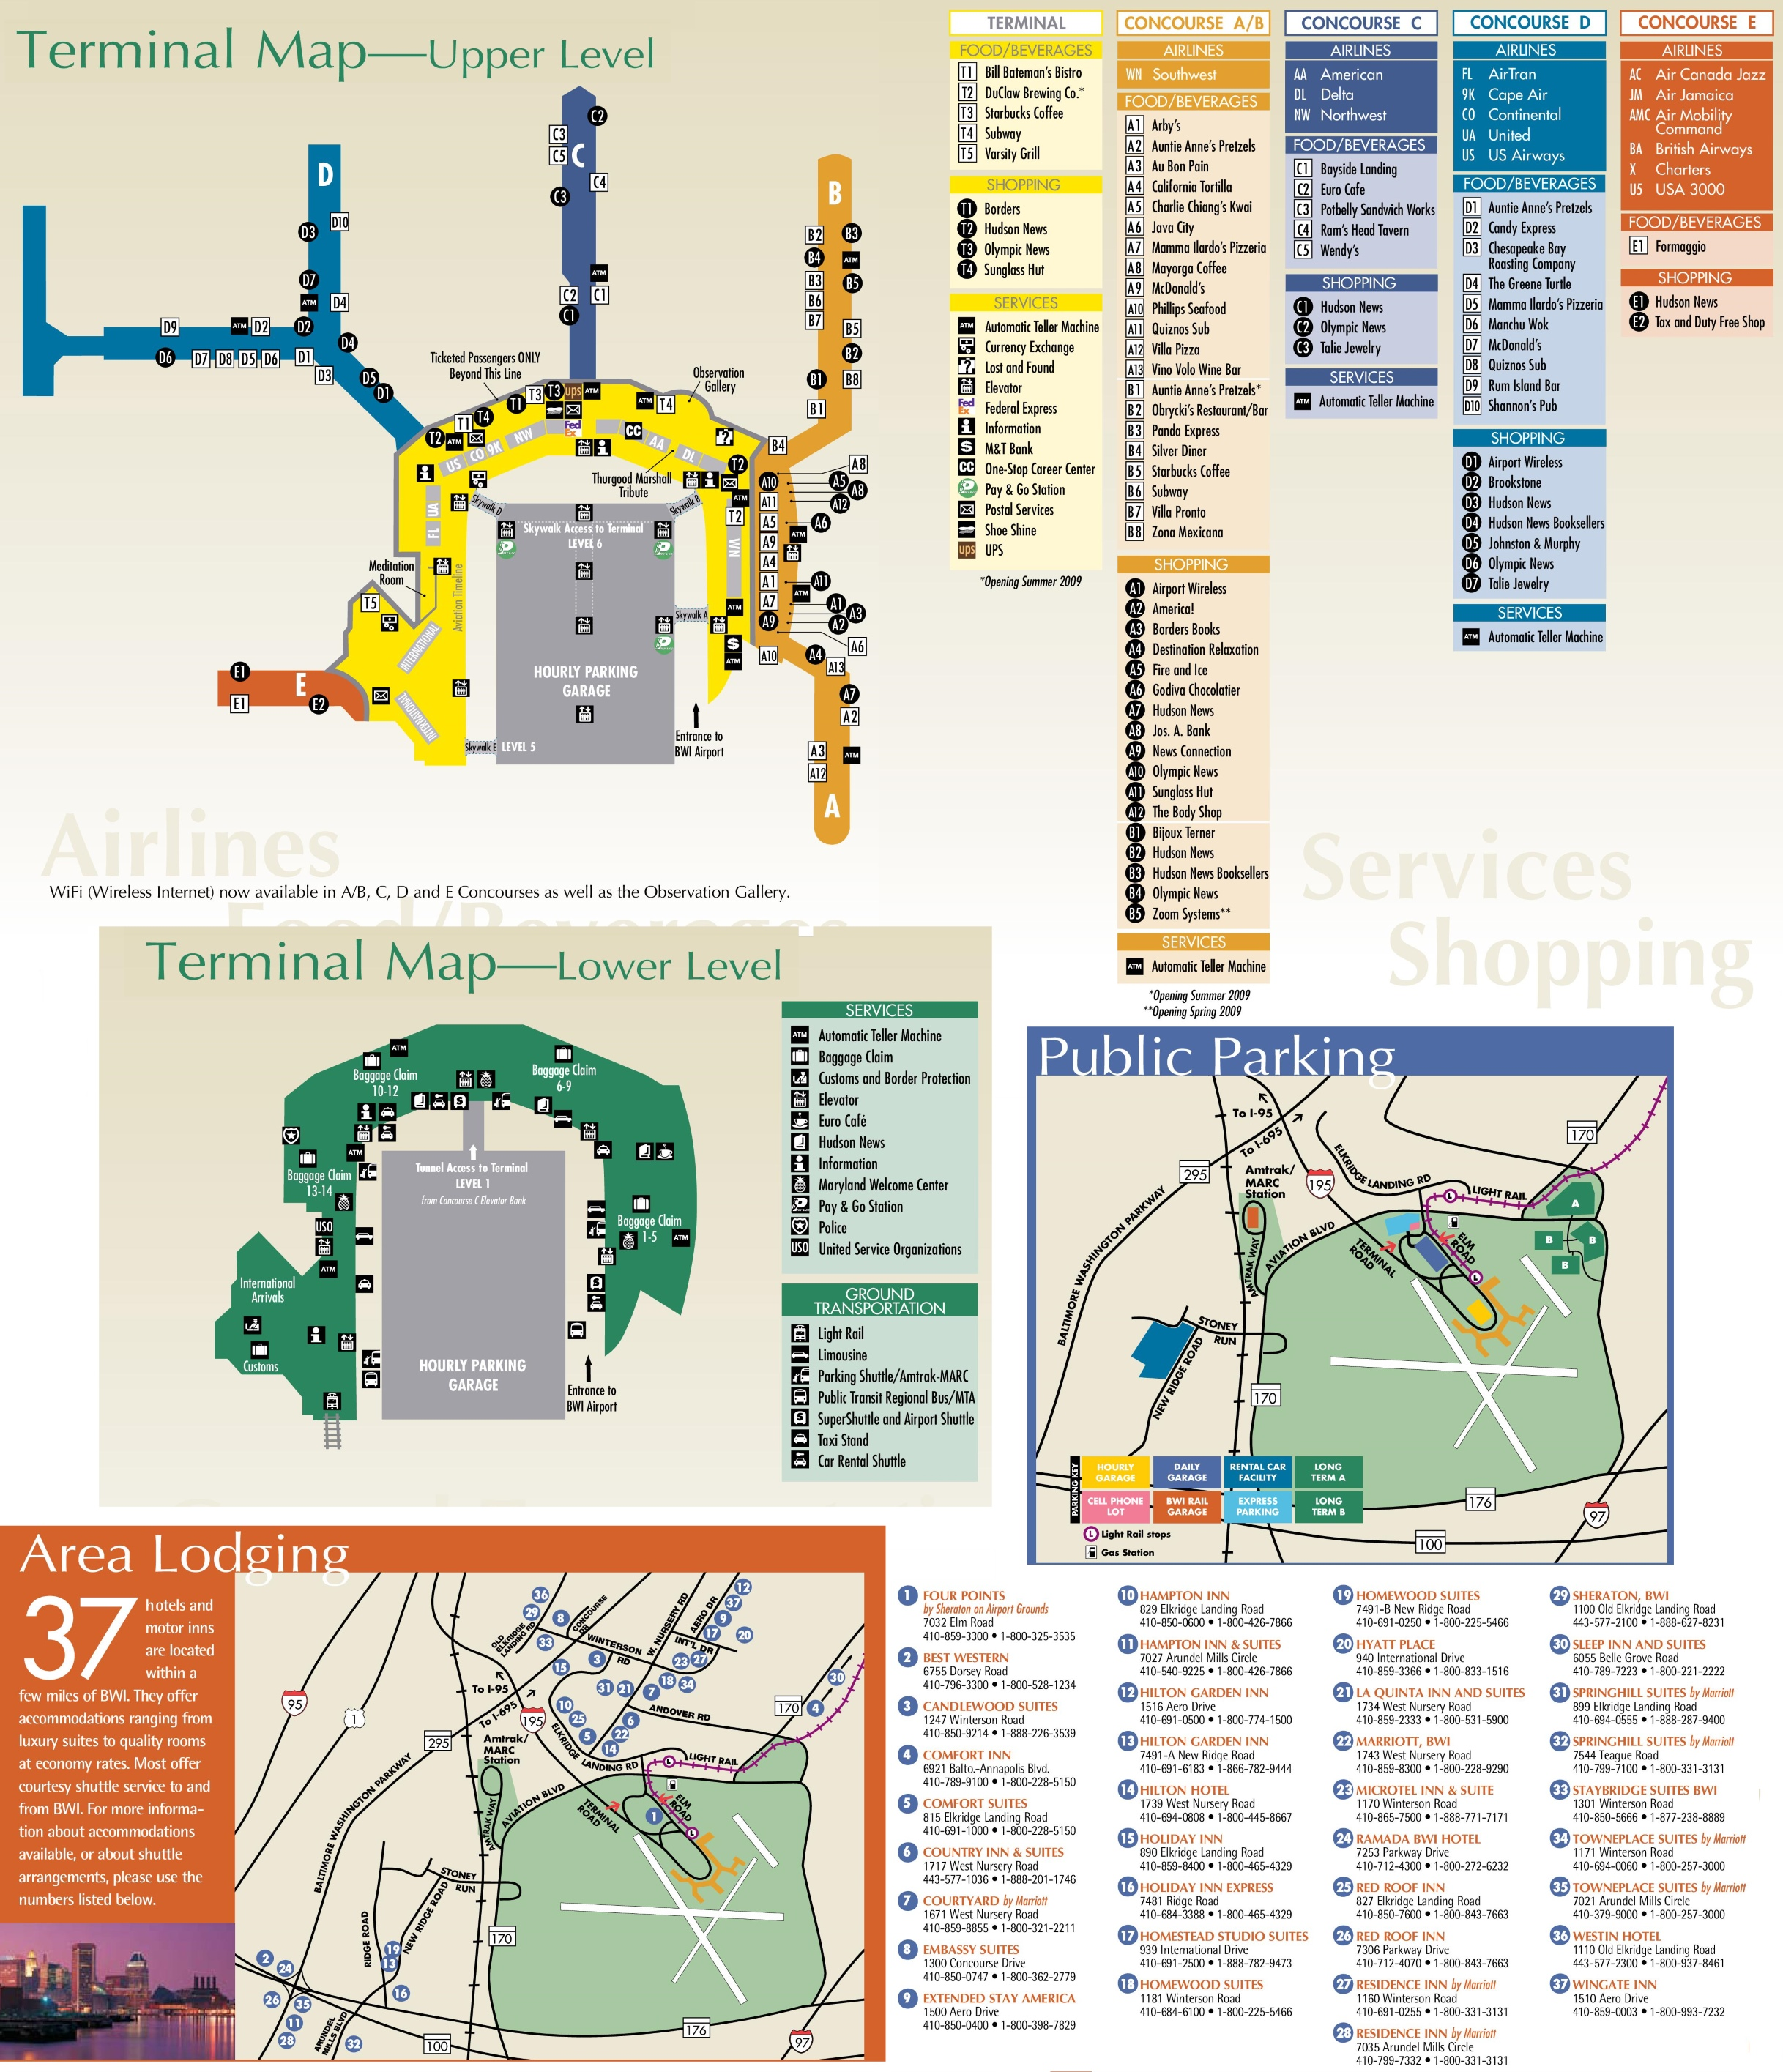 BaltimoreWashington International Airport map